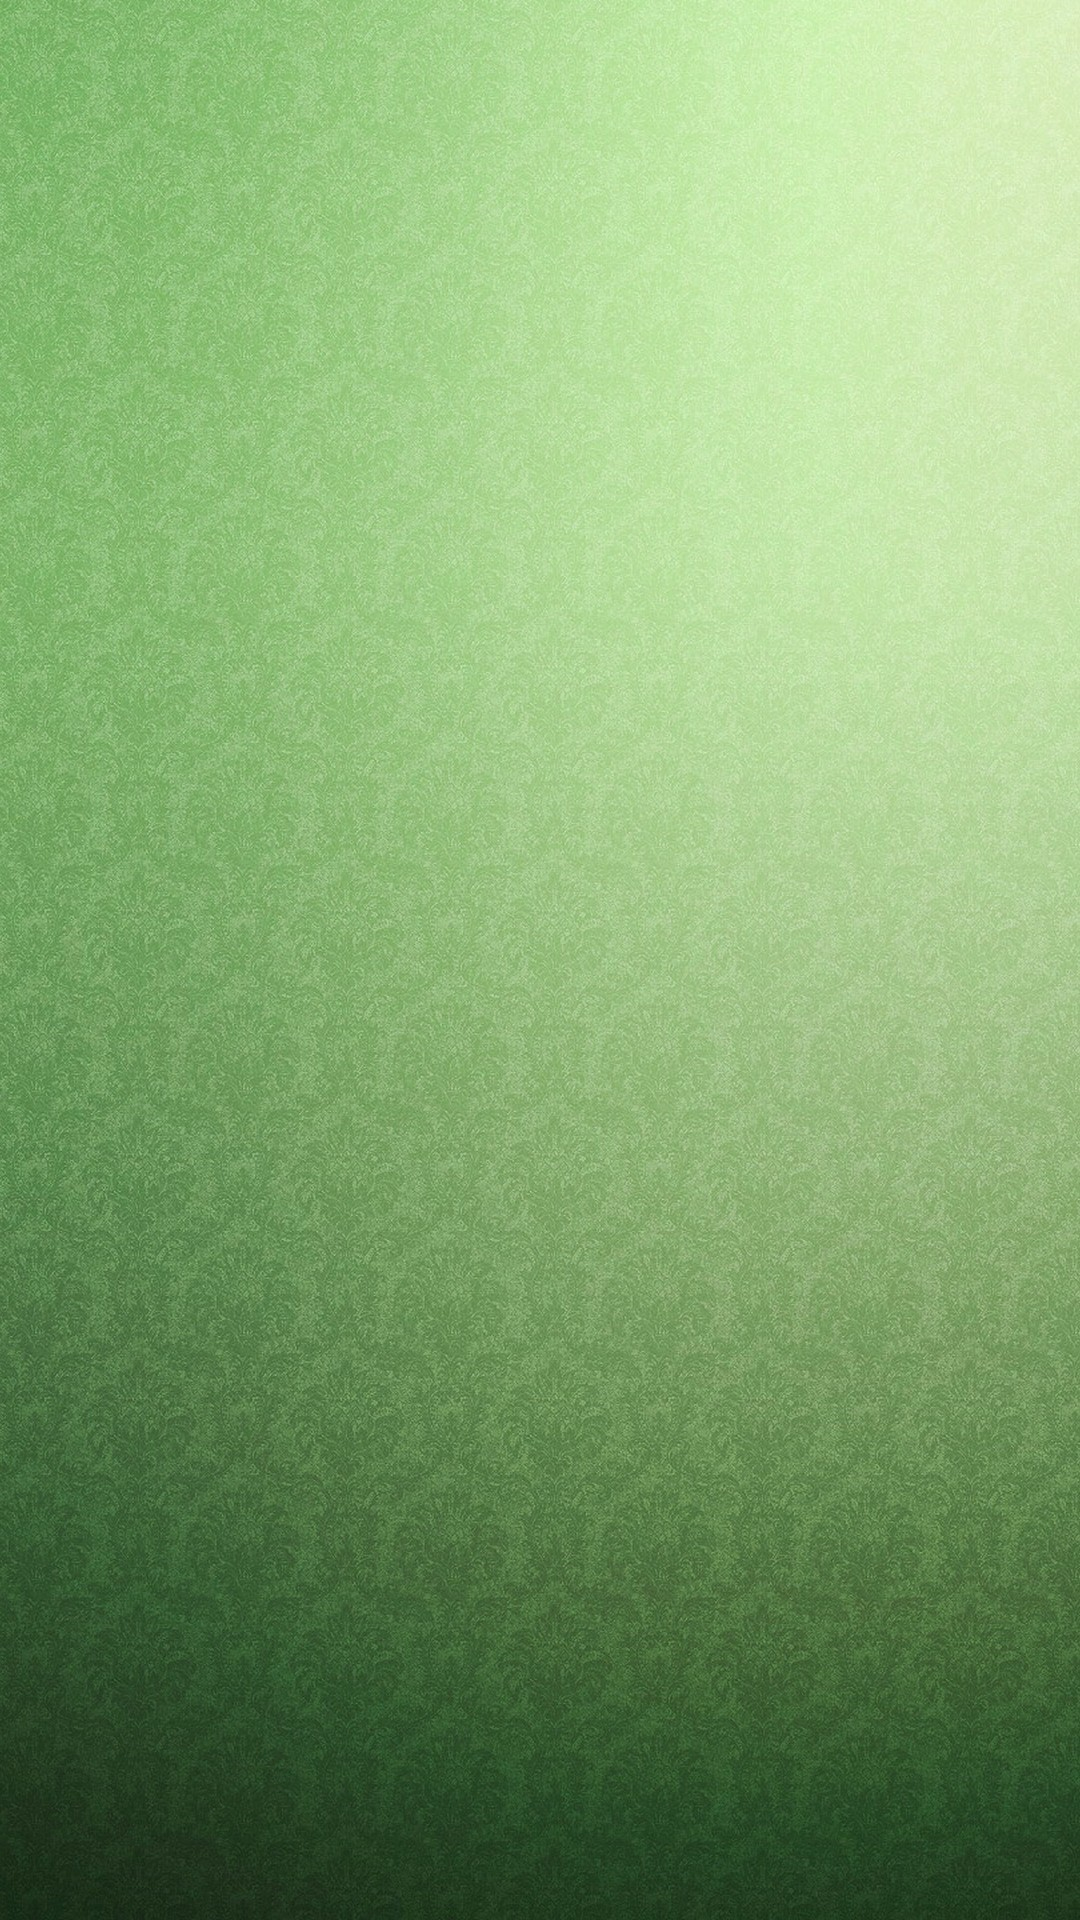 Green phone background